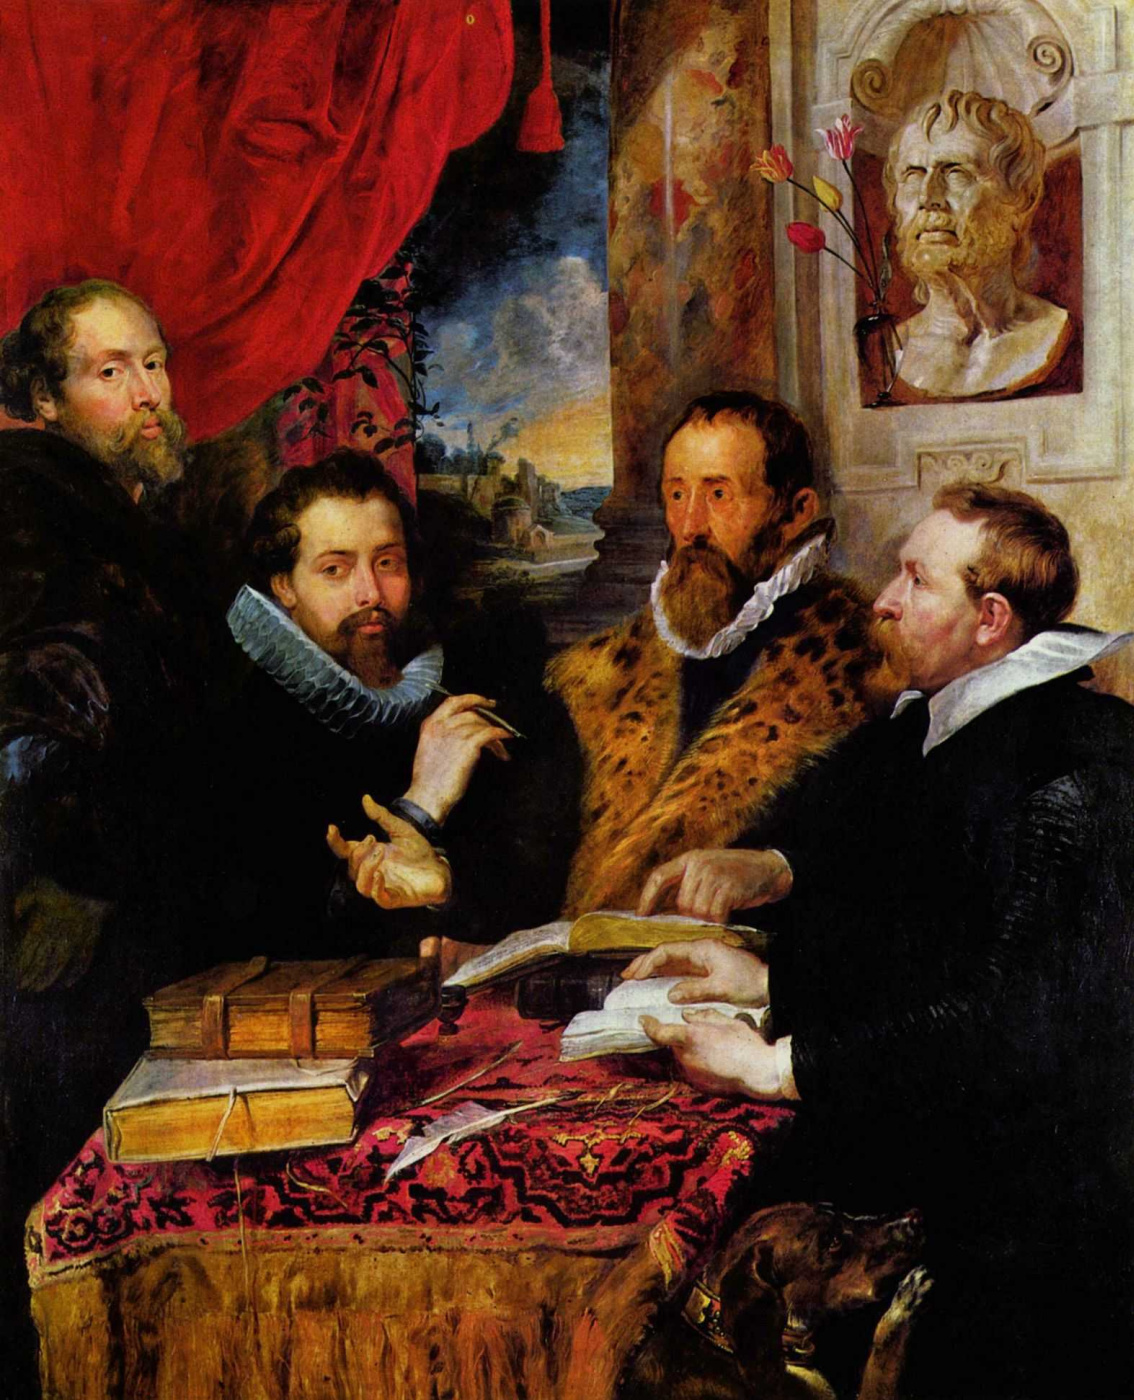 Peter Paul Rubens. Four of the philosopher, from left to right: Rubens, his brother Philipp, the scholar Lipsius and his pupil Jan van der Auwera